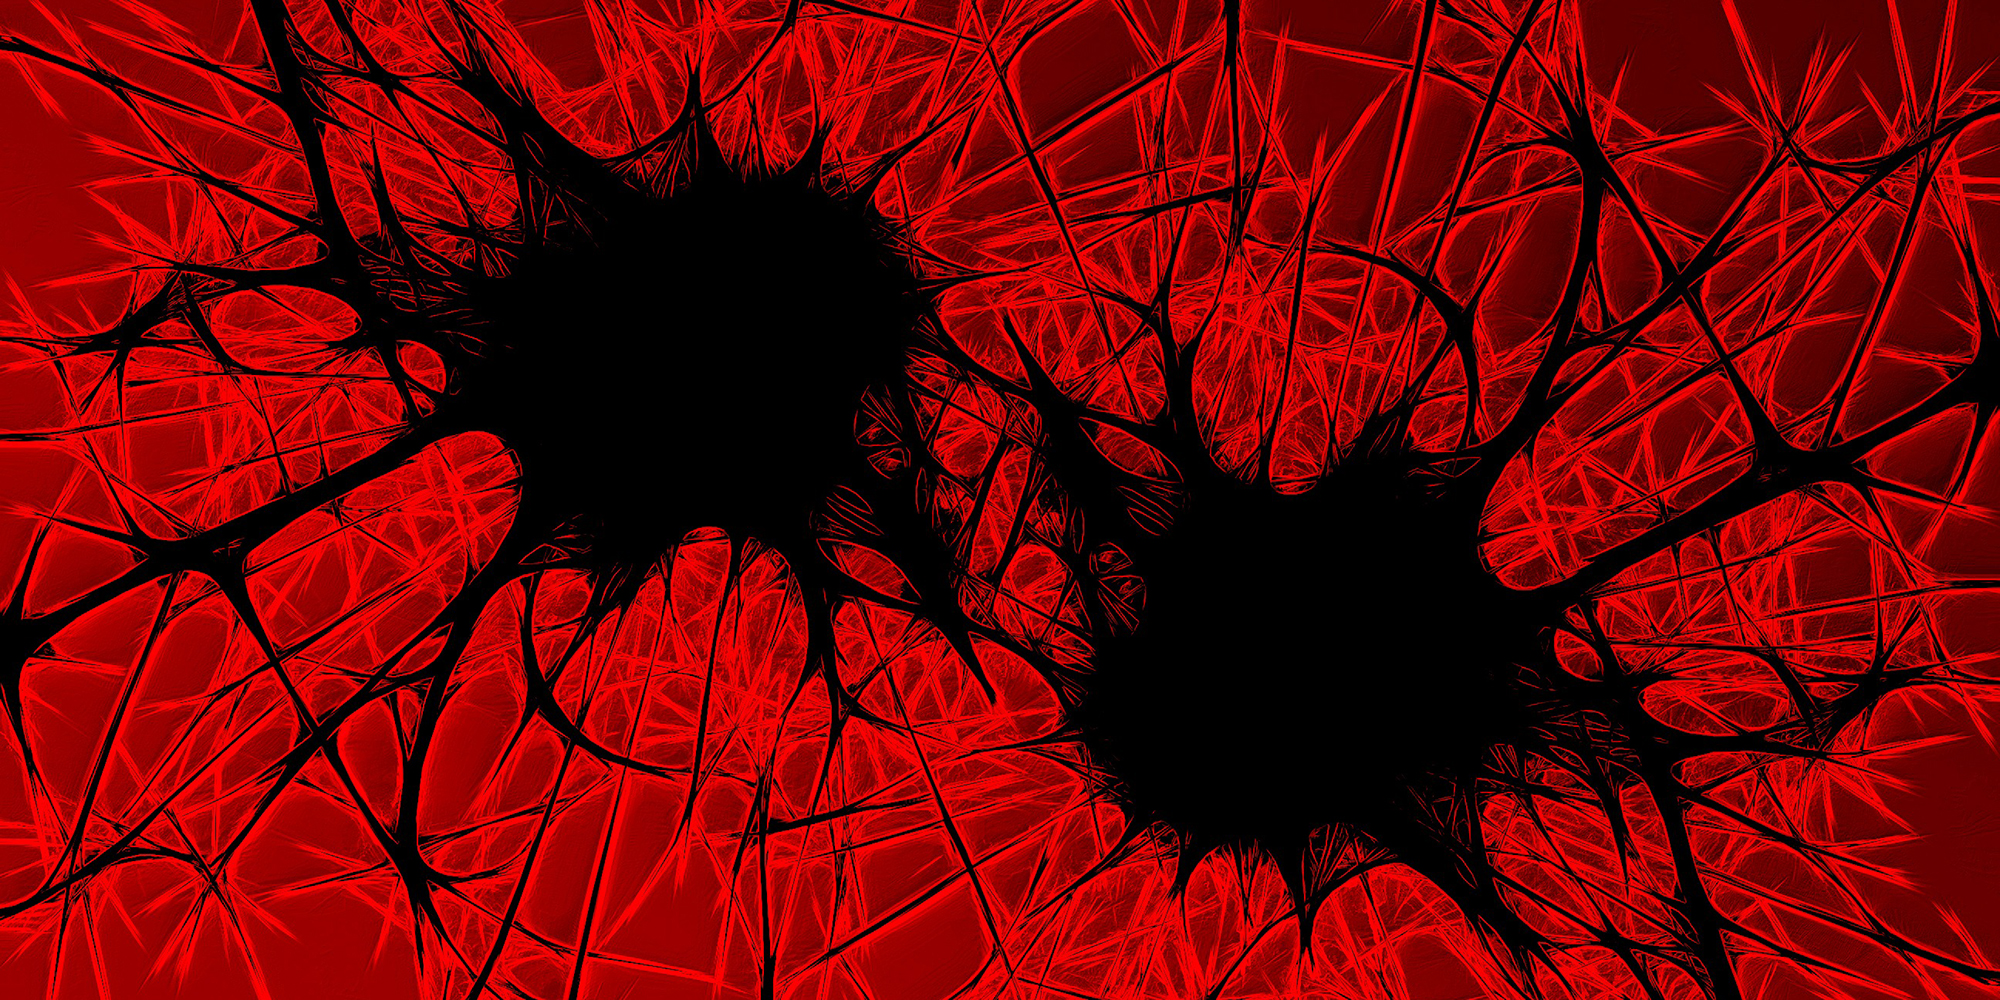 COVID-19---CDC---BACTERIA-BACKGROUND